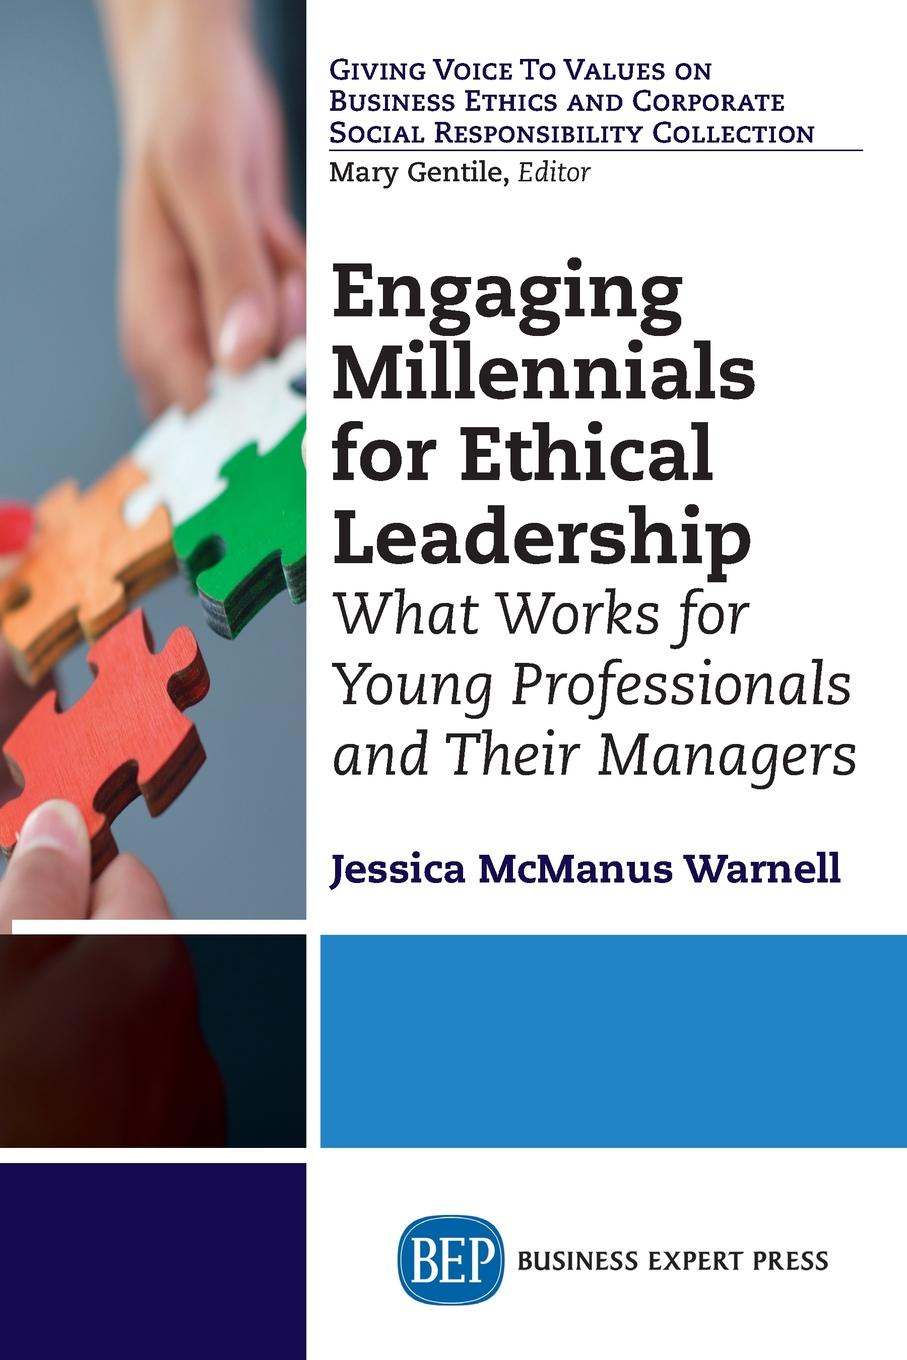 Jessica McManus Warnell Engaging Millennials for Ethical Leadership. What Works For Young Professionals and Their Managers jo manion from management to leadership strategies for transforming health